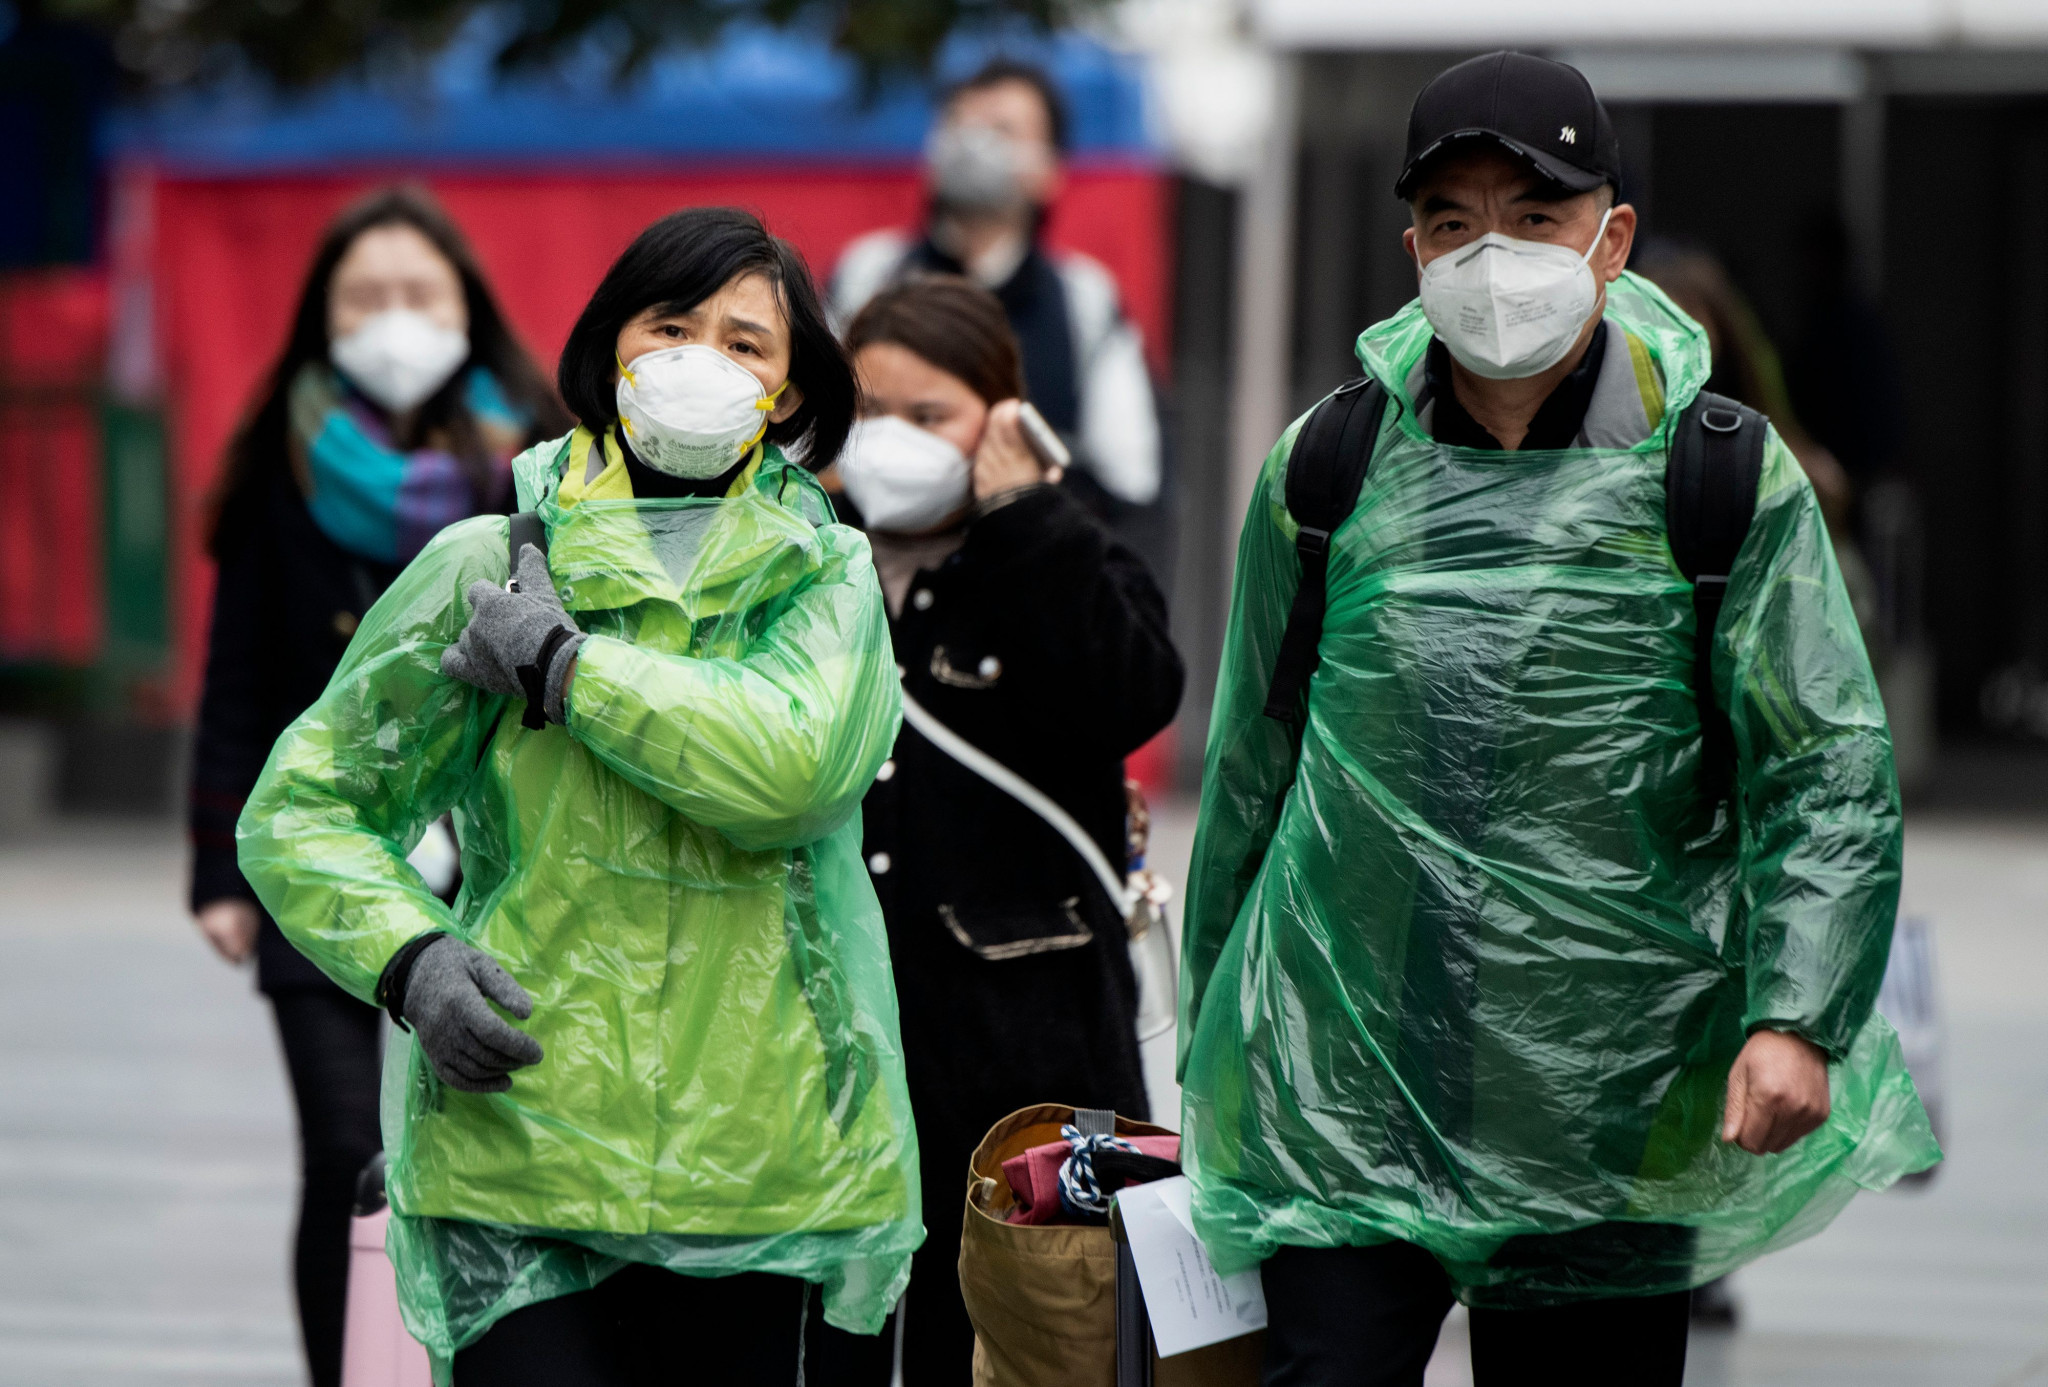 IFSC send 10,000 masks to China for fight against coronavirus